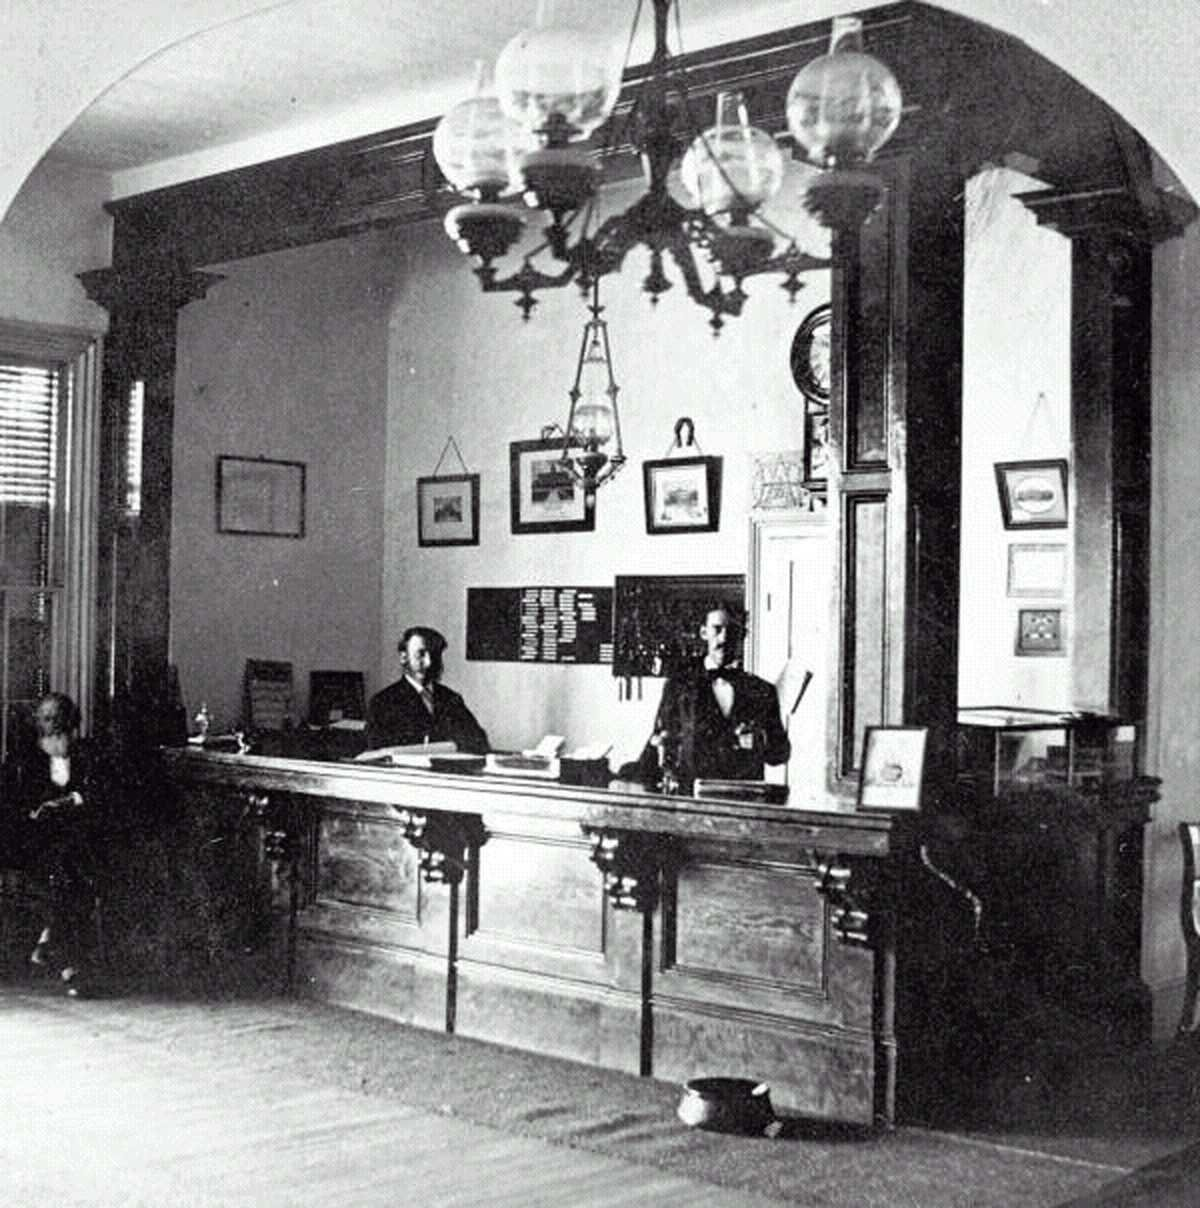 Green Cove Springs' Clarendon Hotel was among the grand dames of St. Johns River hotels for almost three decades. Guests were greeted at the main desk by highly skilled staff.